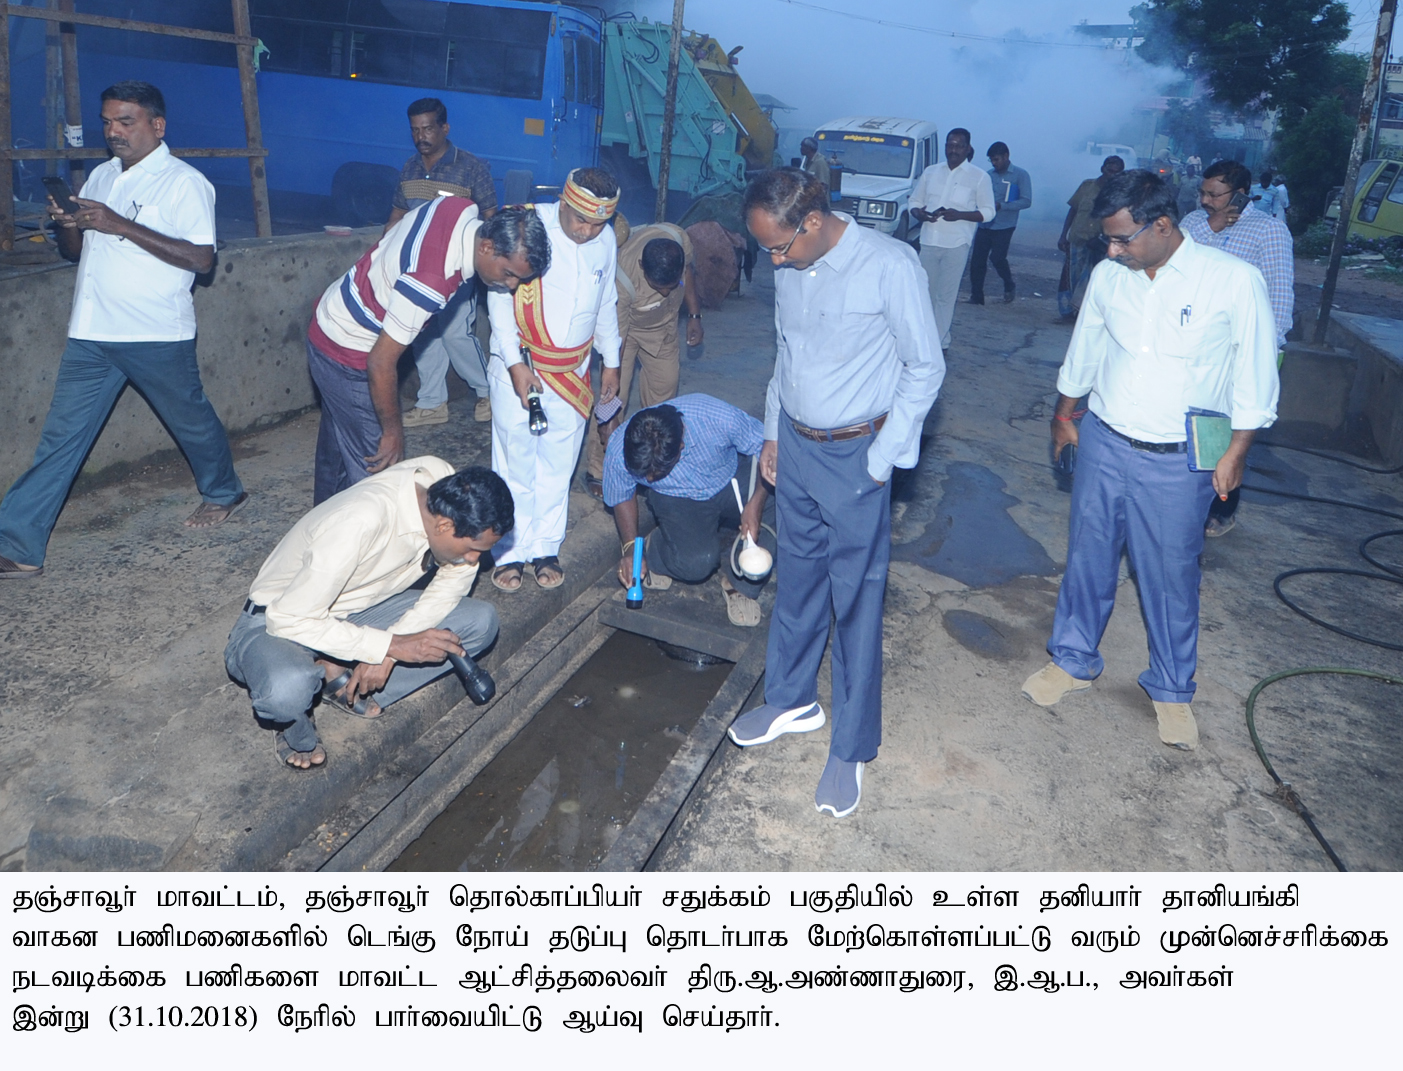 Image of dengue inspection